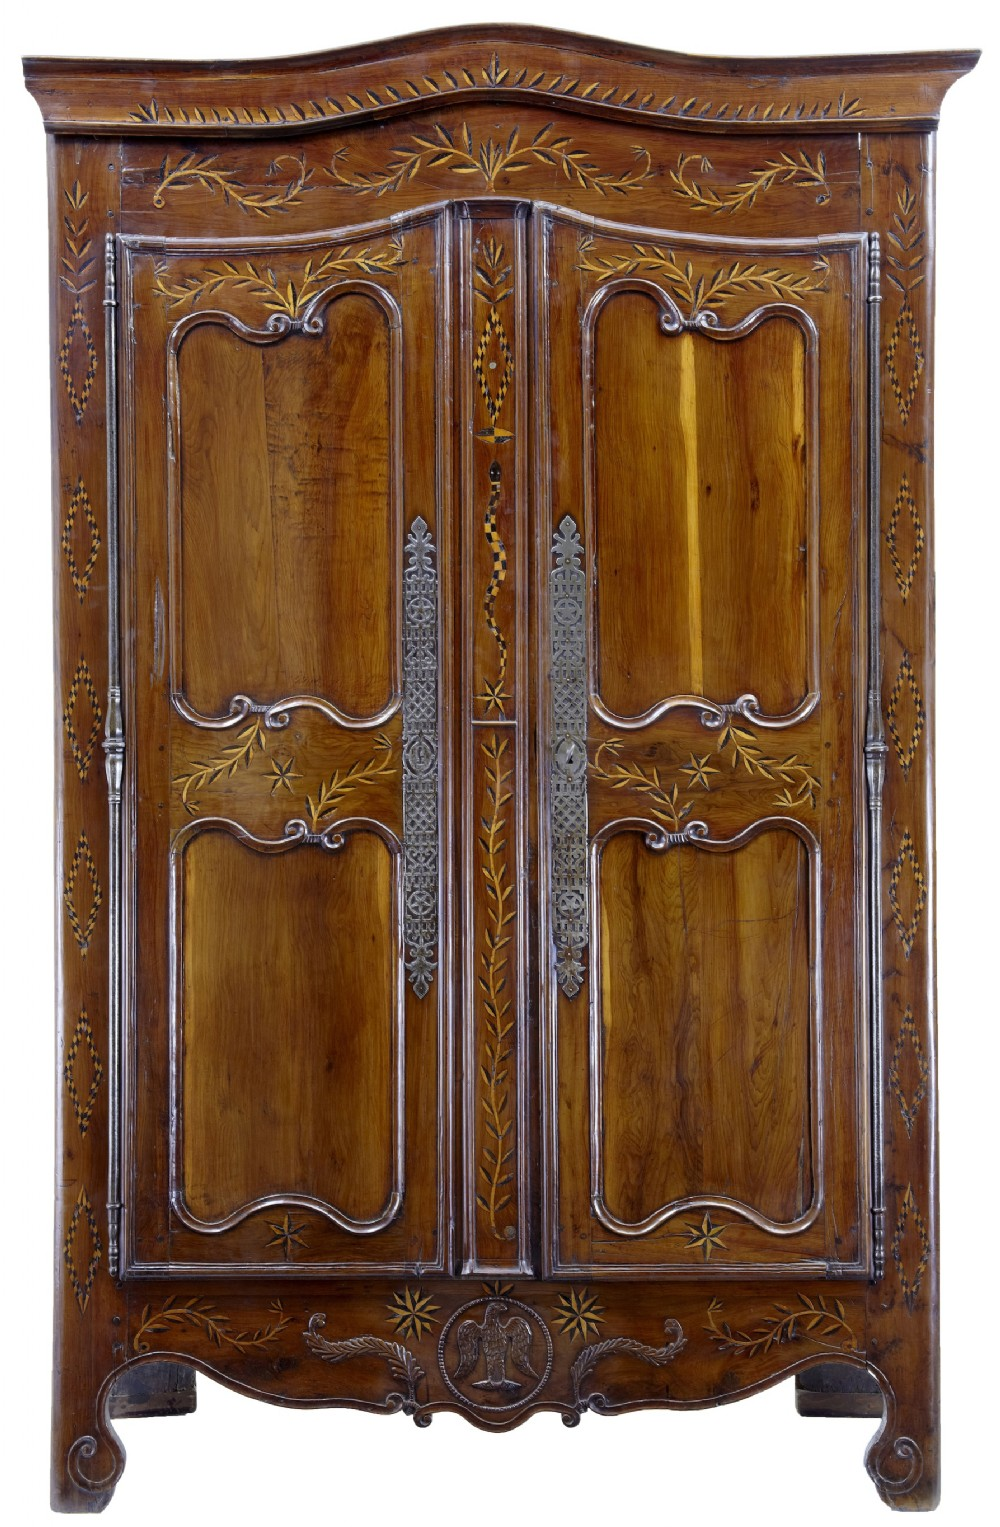 18th century french yew wood chestnut armoire